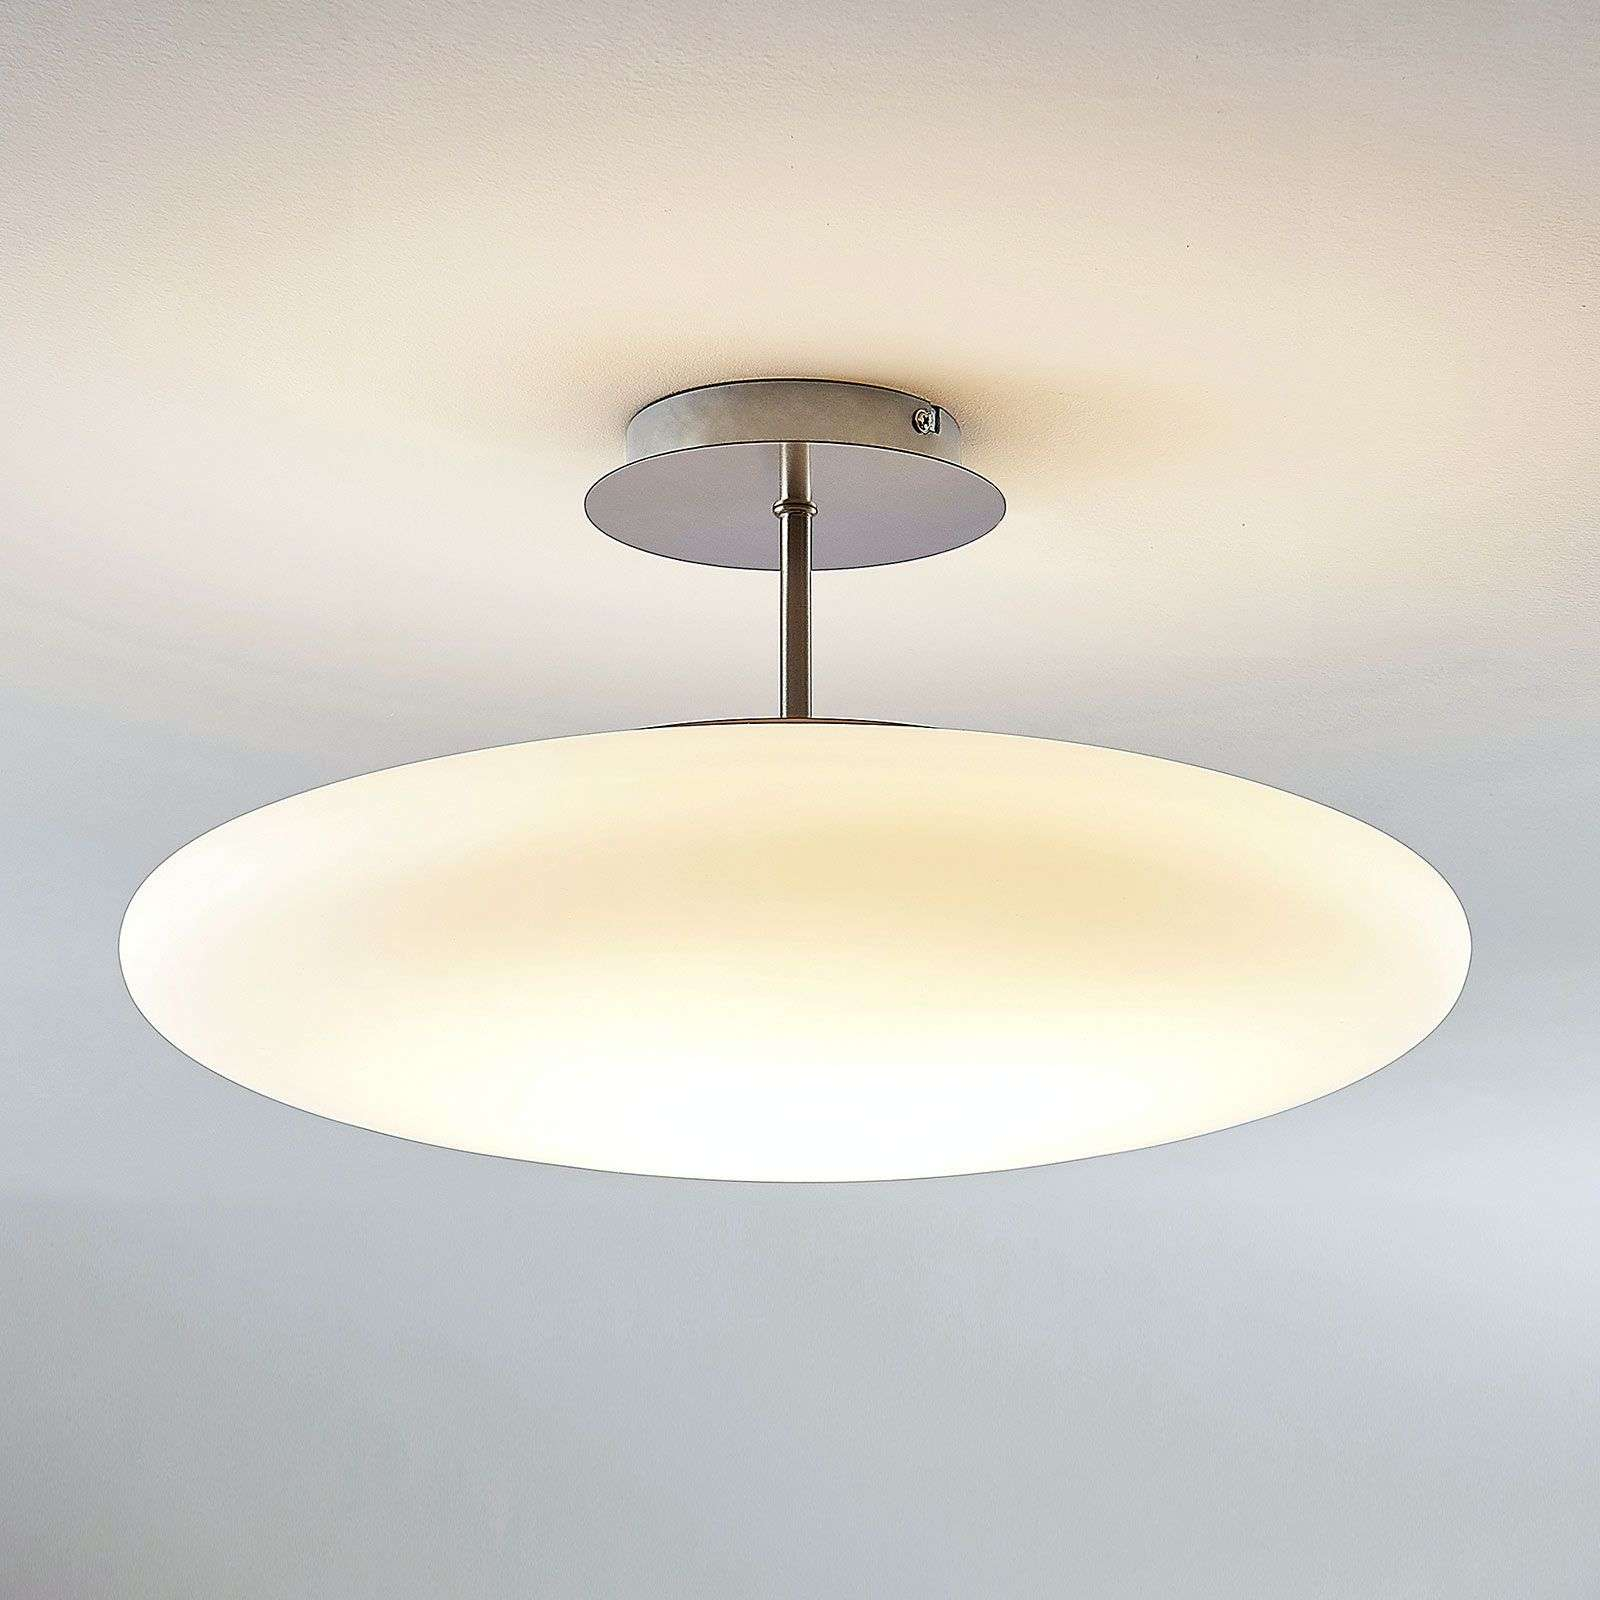 LED opaalglas plafondlamp Gunda in wit